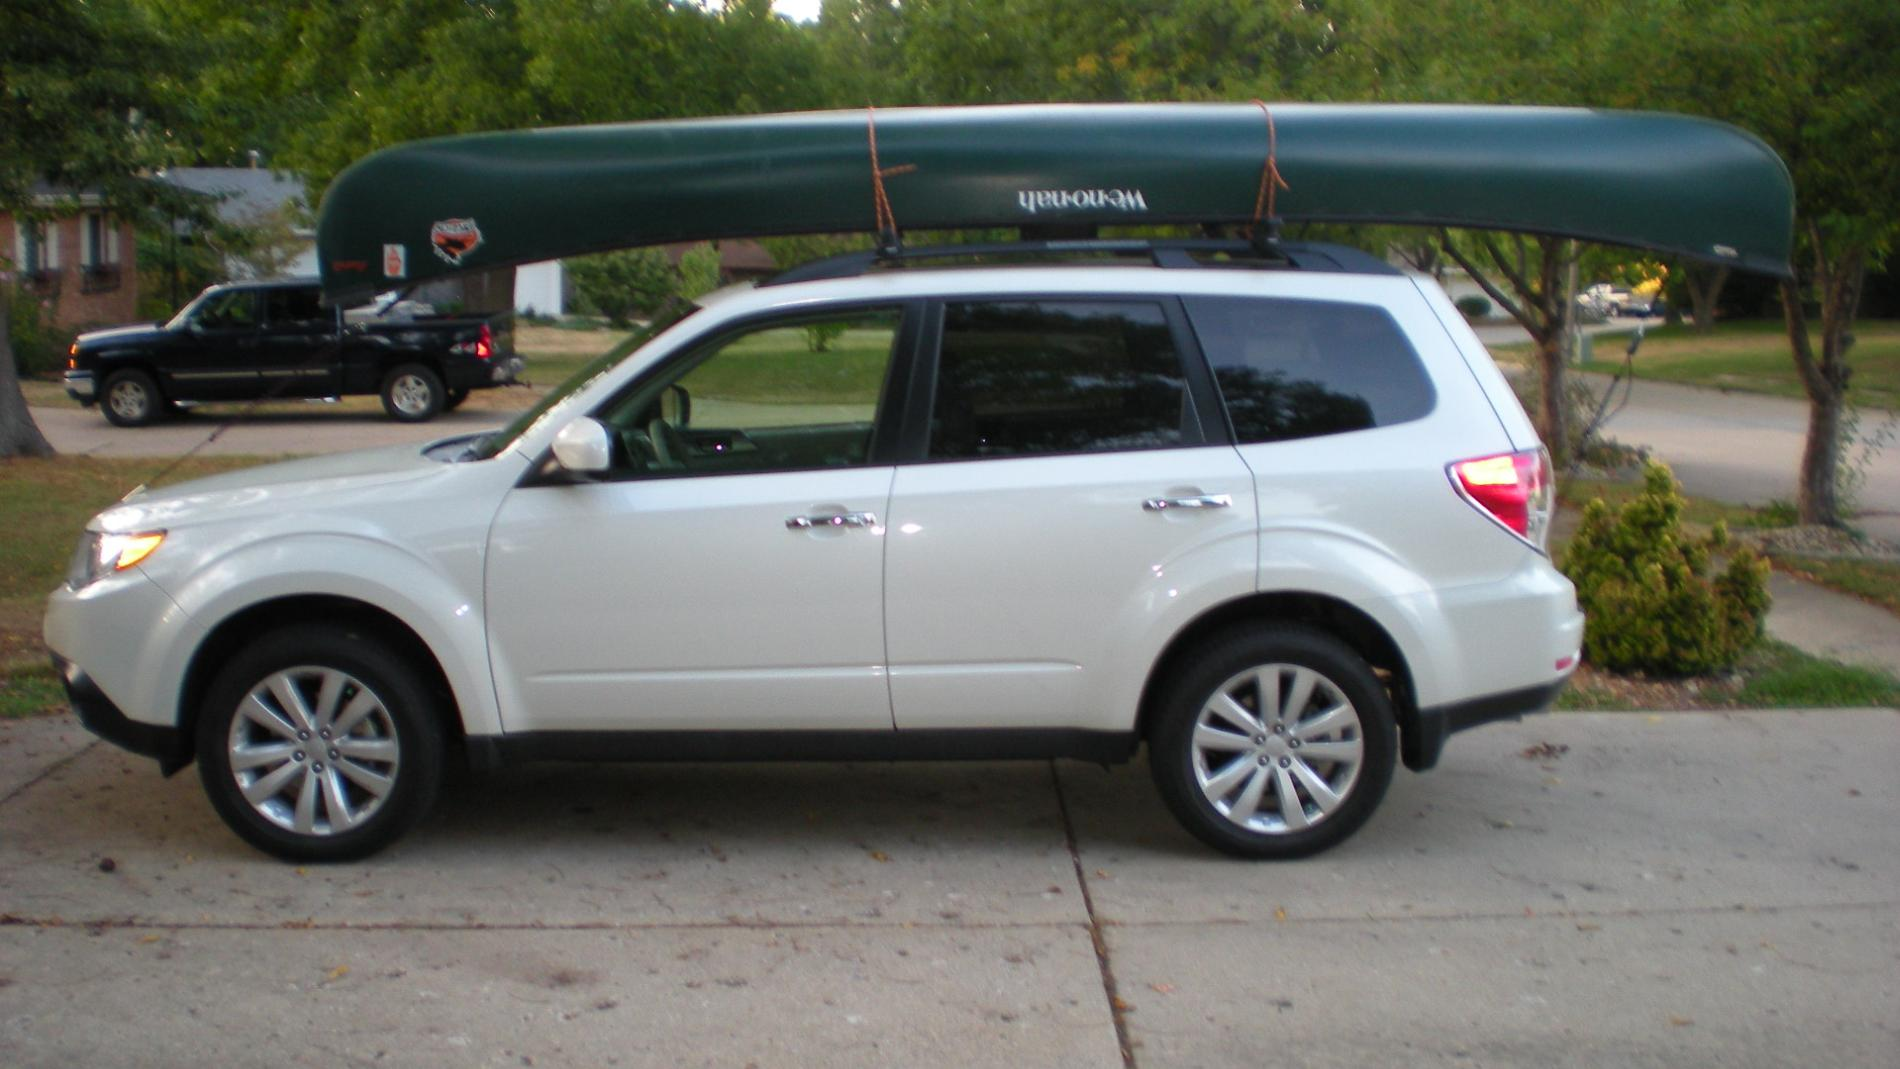 Bwca Subaru Outback Roof Rack Boundary Waters Gear Forum